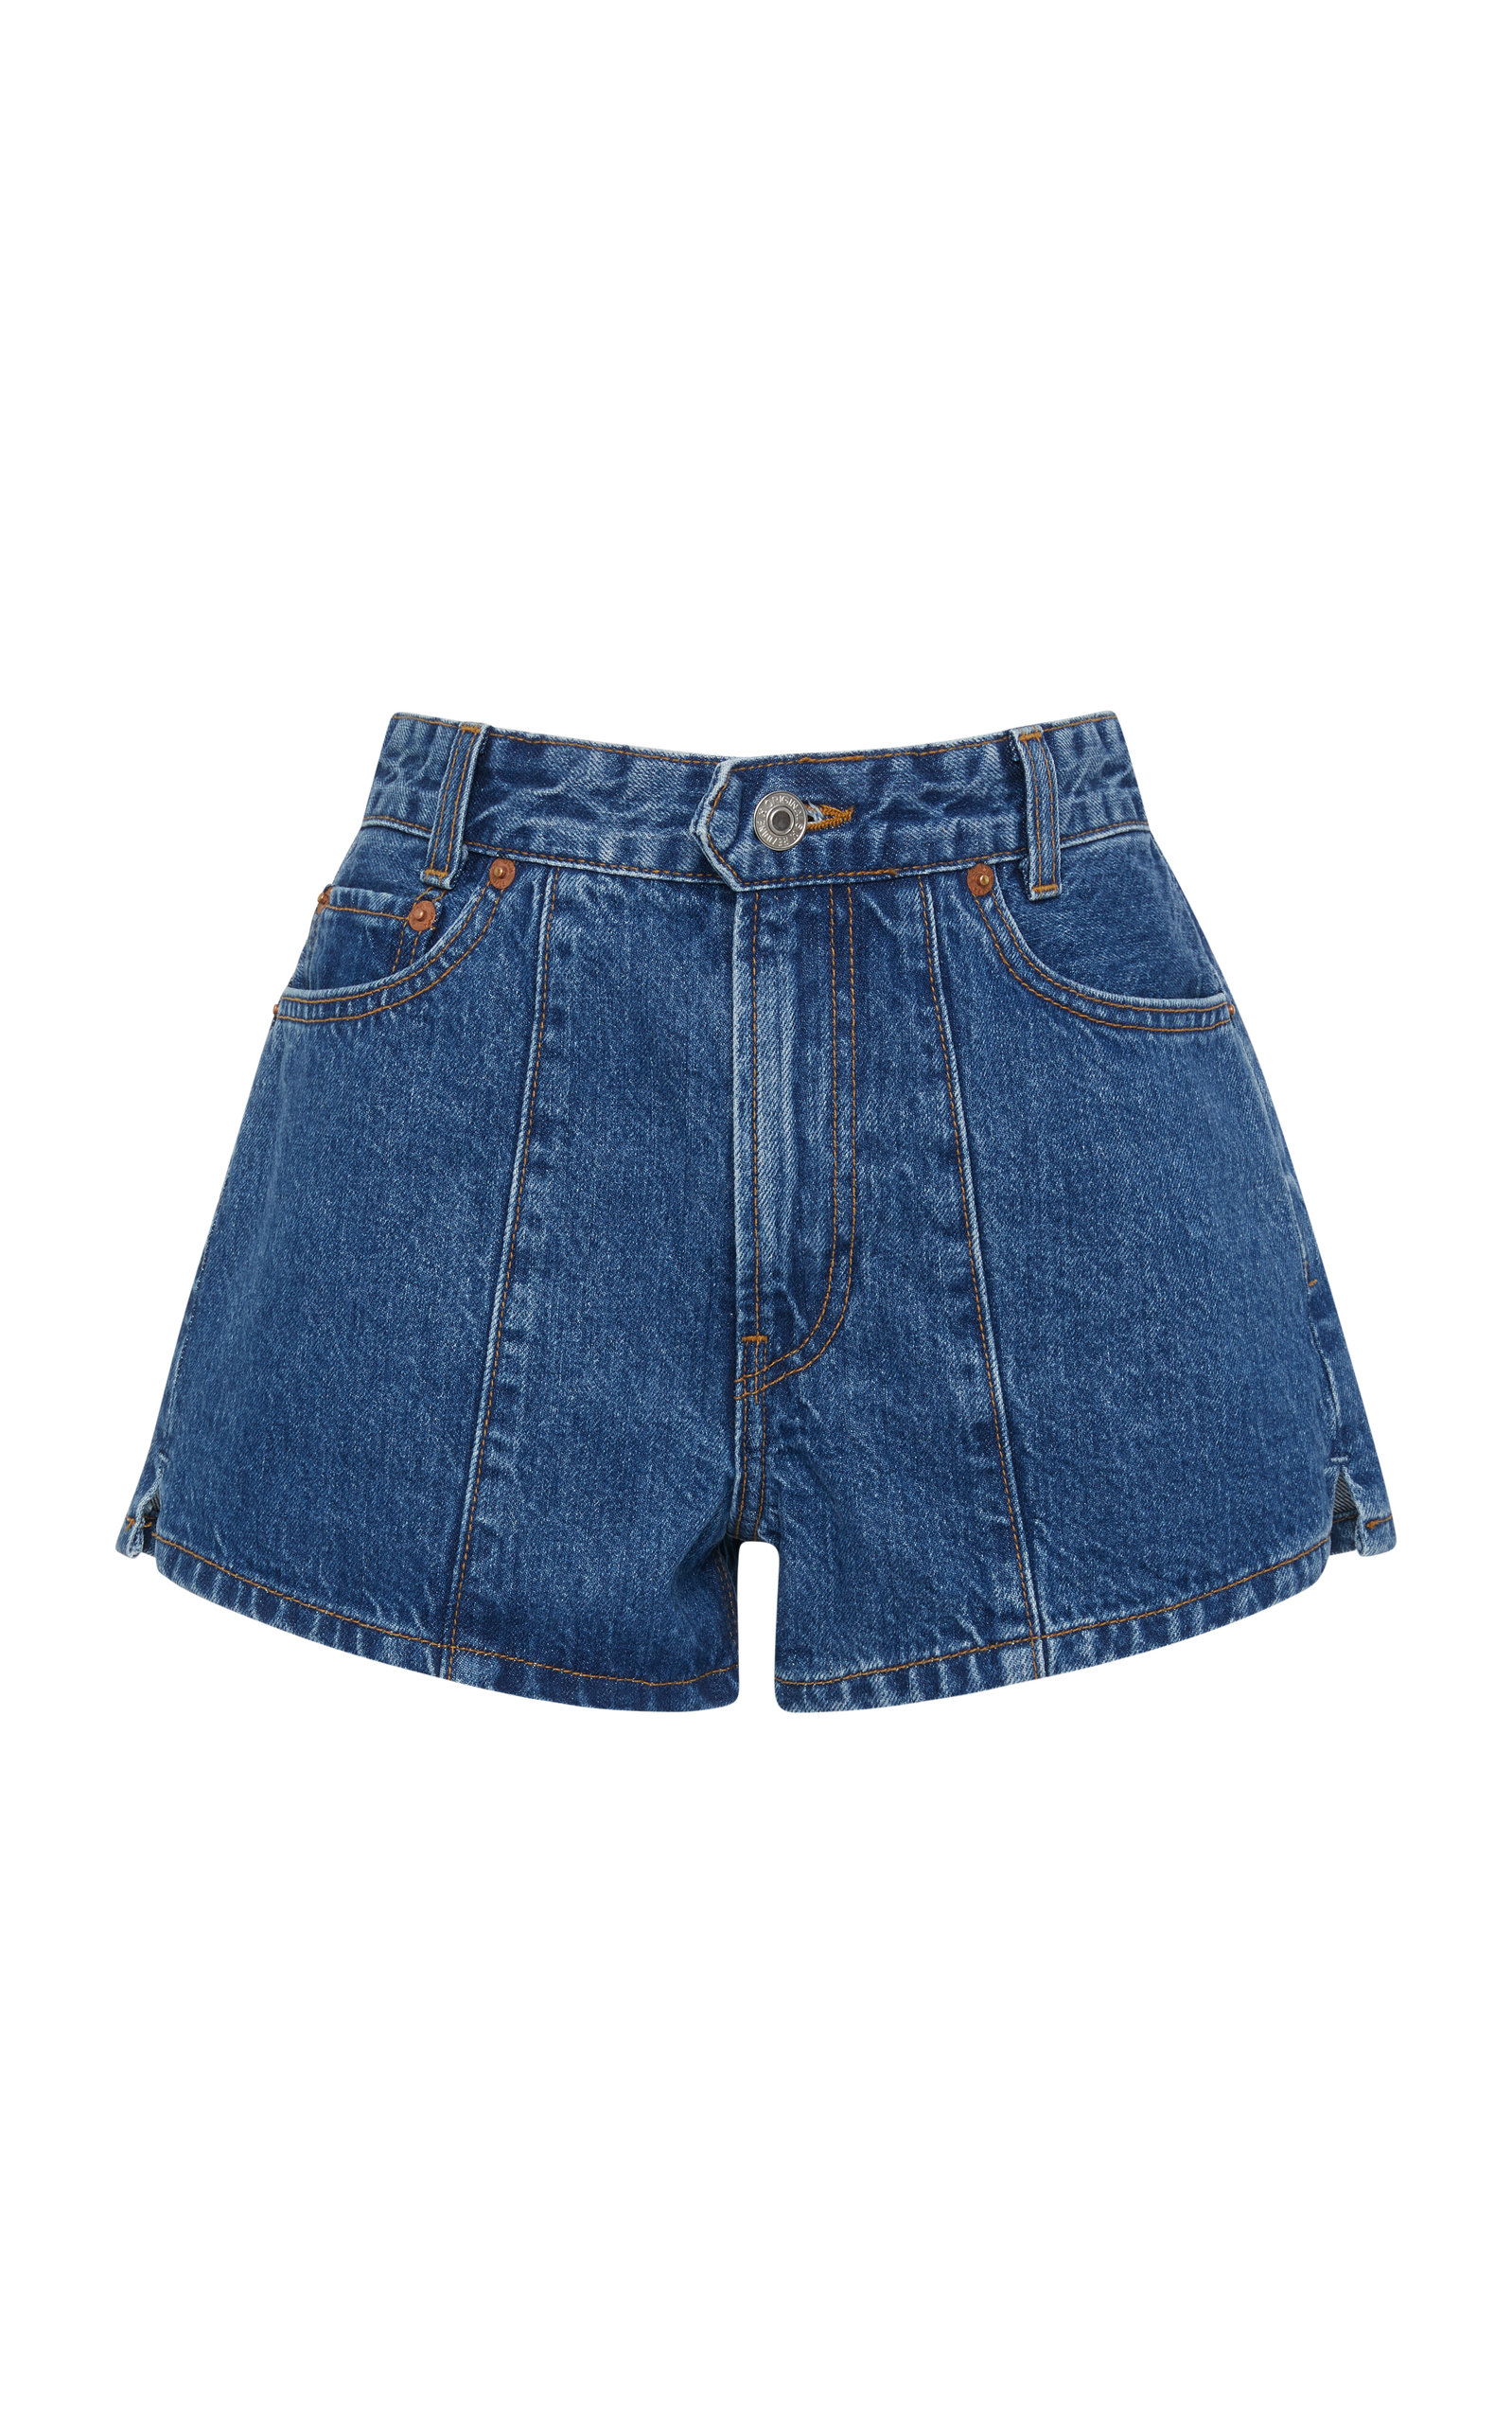 + RE/DONE VENICE PINTUCKED DENIM SHORTS